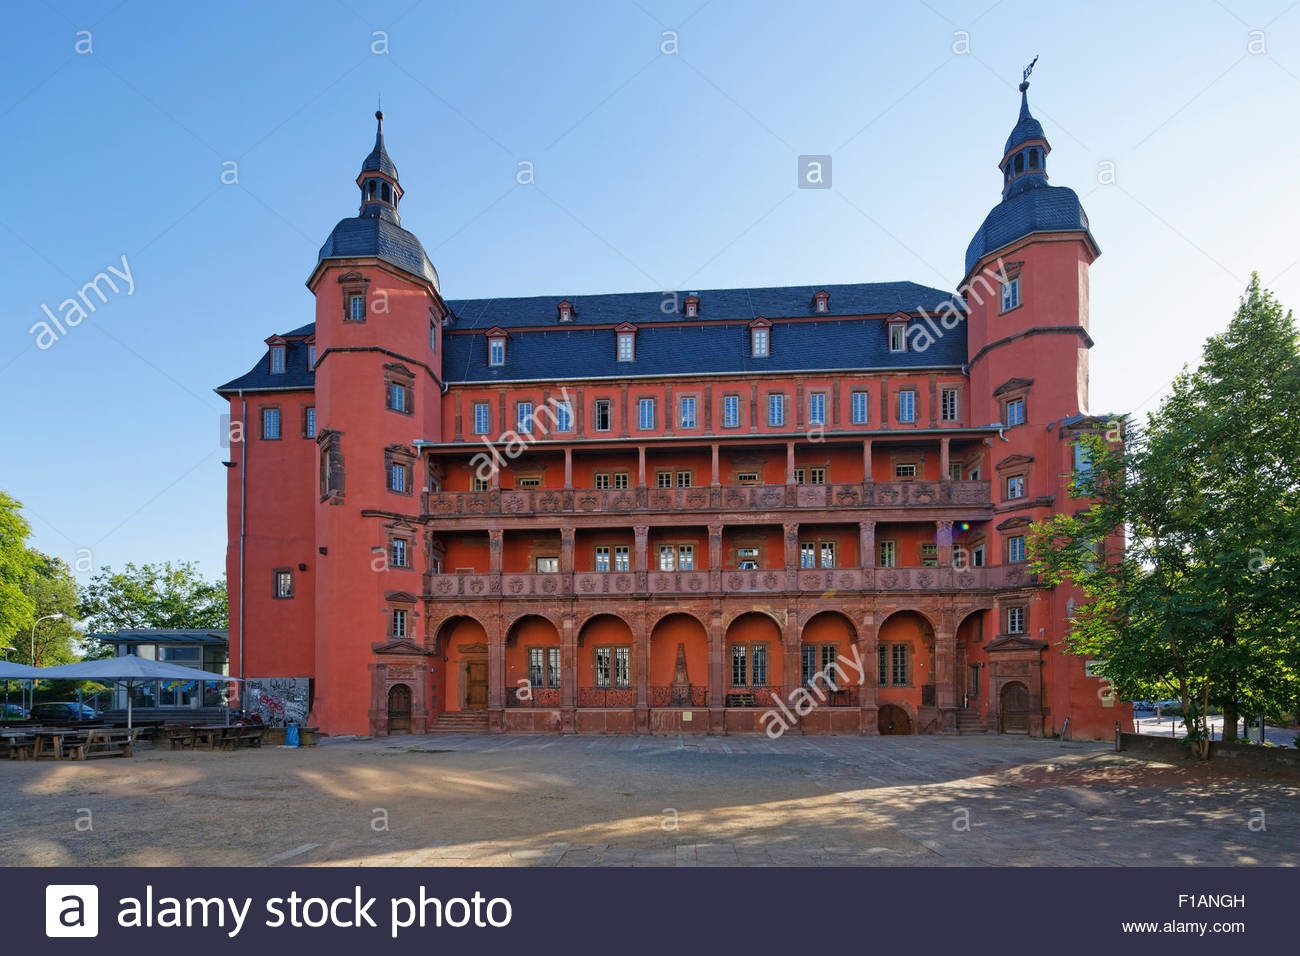 Germany hesse offenbach am main isenburg castle stock for Werbeagentur offenbach am main